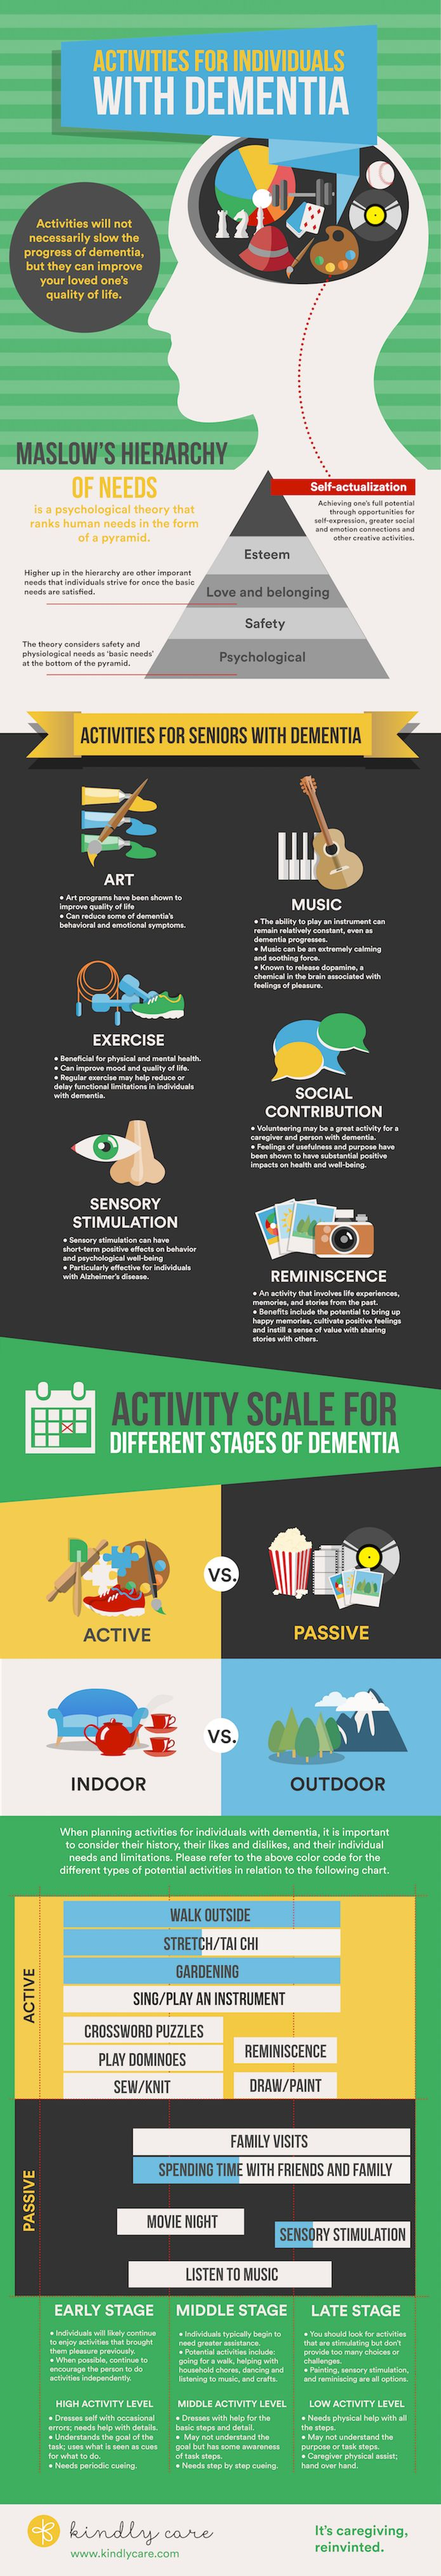 Dementia, by definition, is characterized by many declines and limitations. Although it may sometimes be hard to see past these challenges, not all abilities are lost in dementia patients, especially in the early and middle stages of the disease. #dementiaactivities #infographic #alzheimers #dementia #elderlycare #aging #mentalhealth #caretaking #healthyaging #health #kindlycare